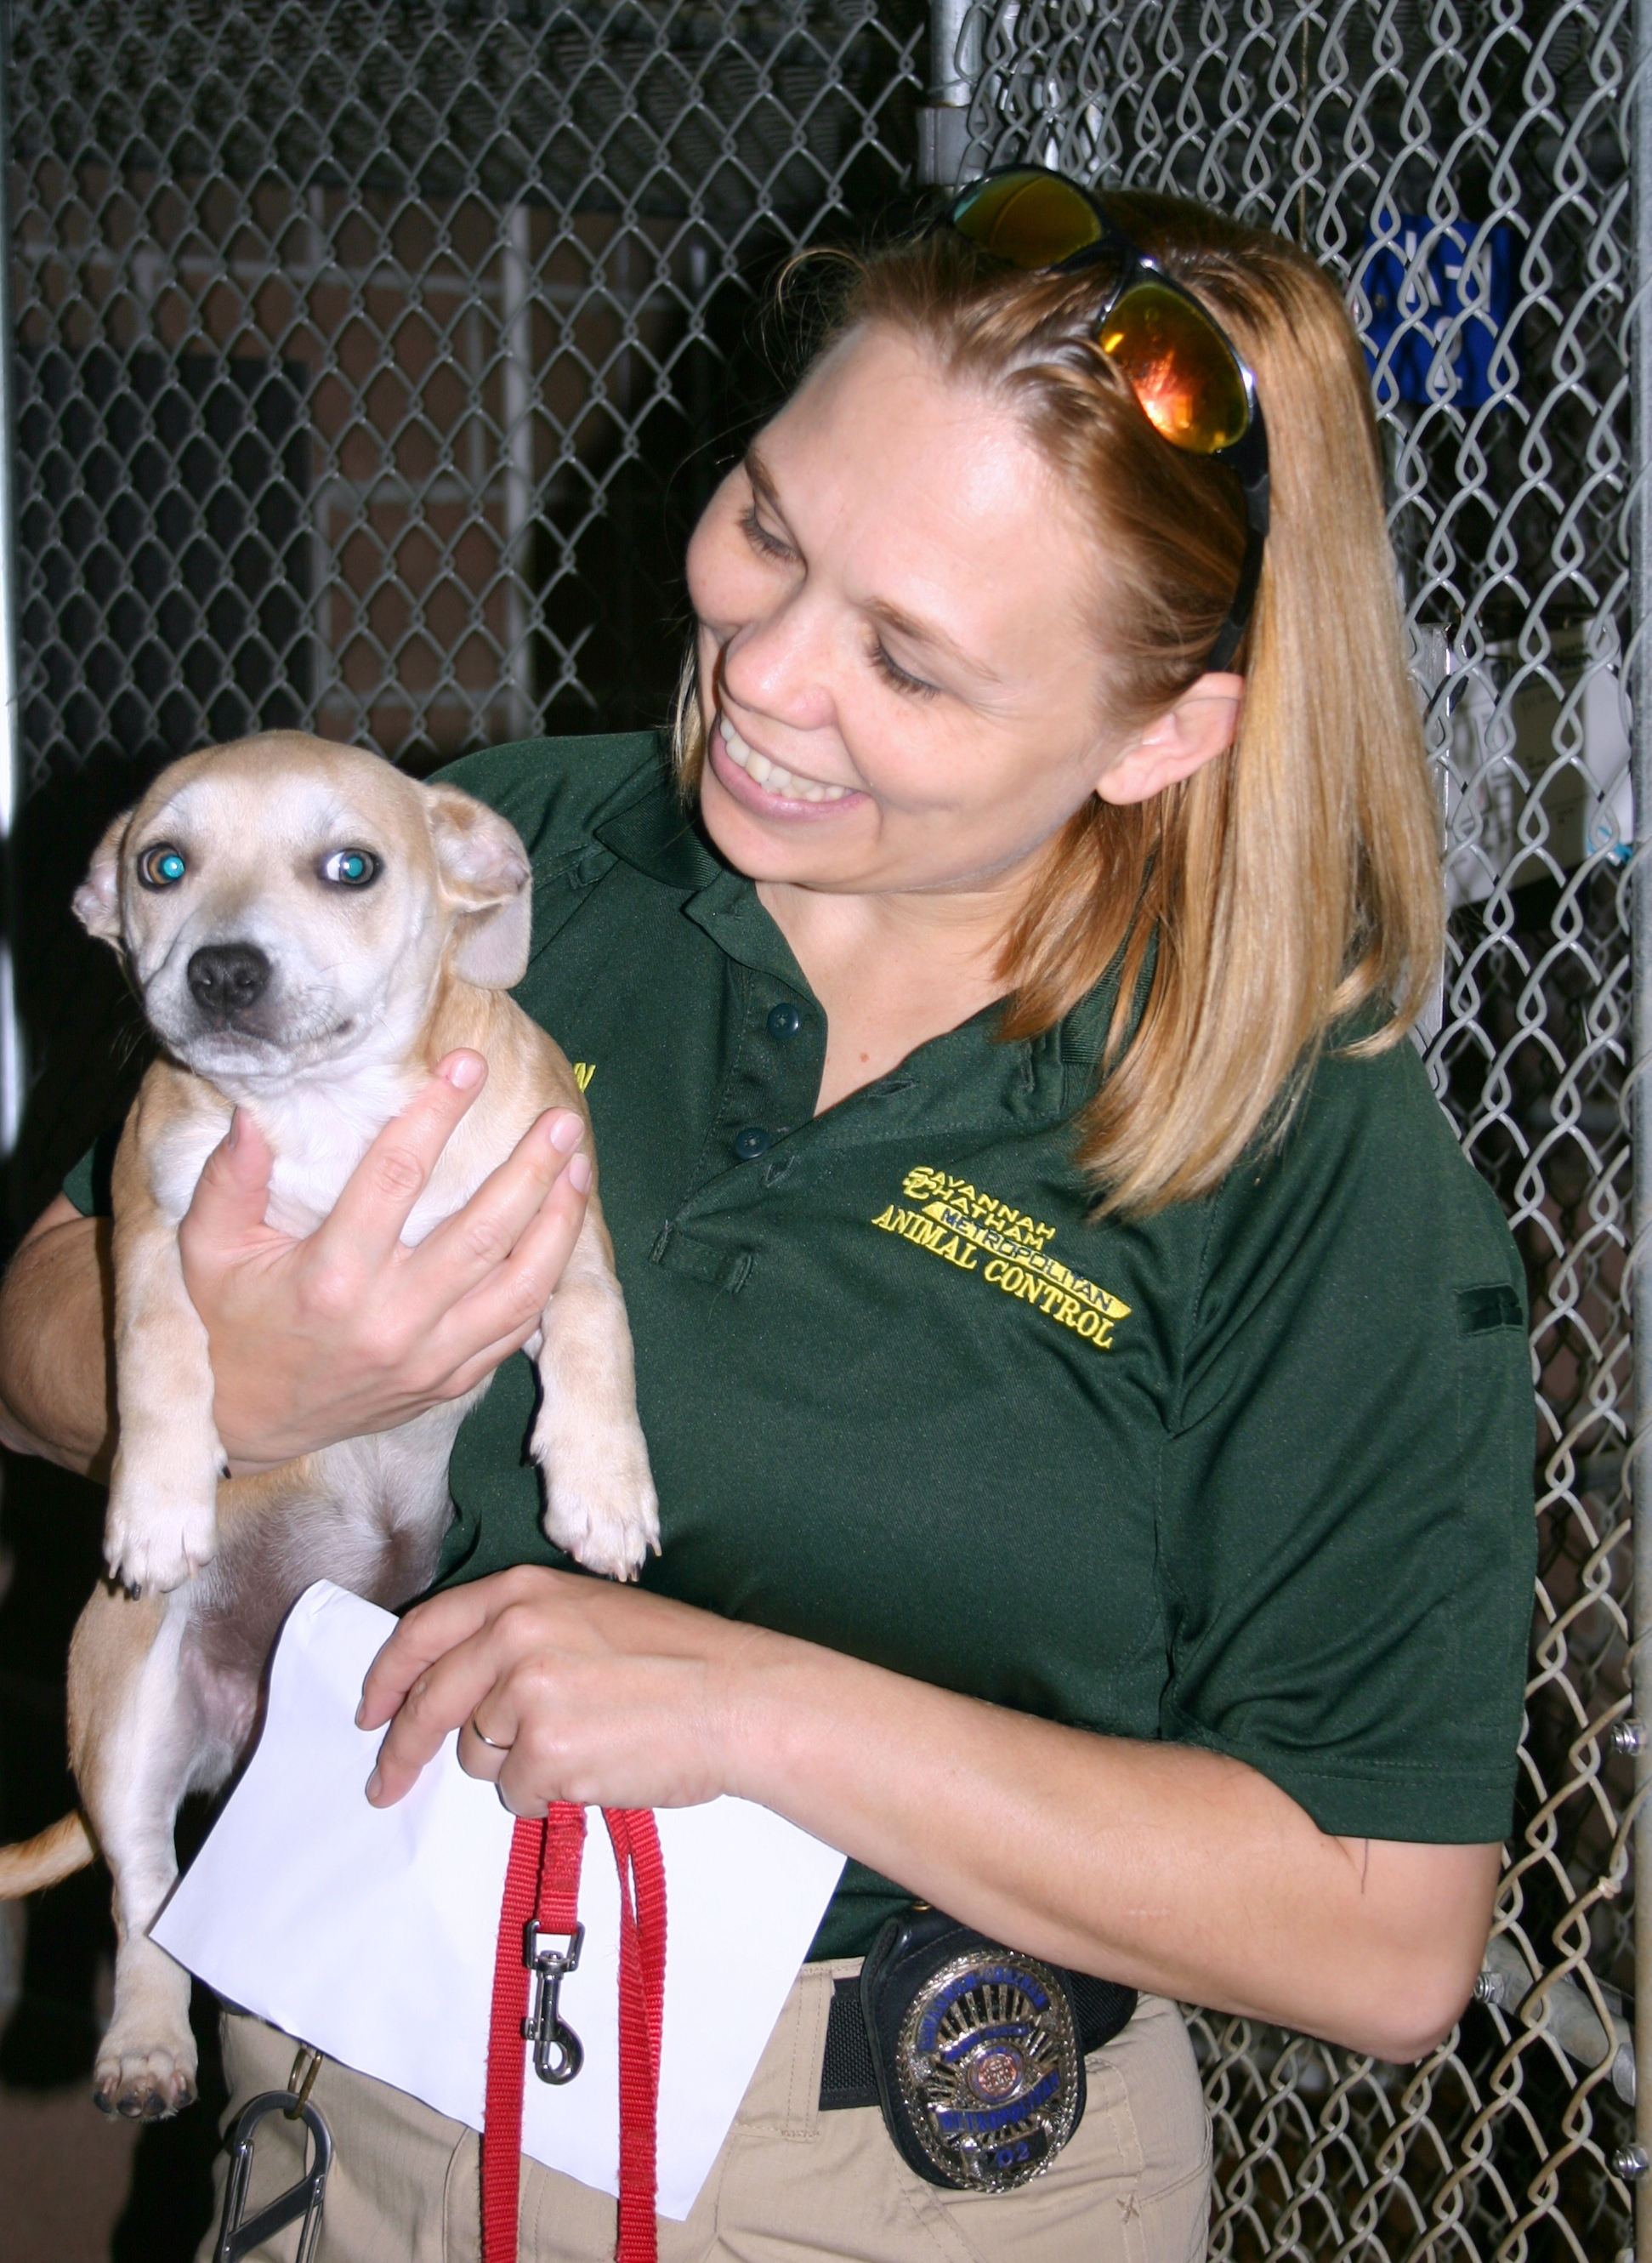 Animal Control Officer Christina Sutherin carries a pup to the Atlanta Humane Society transport vehicle.